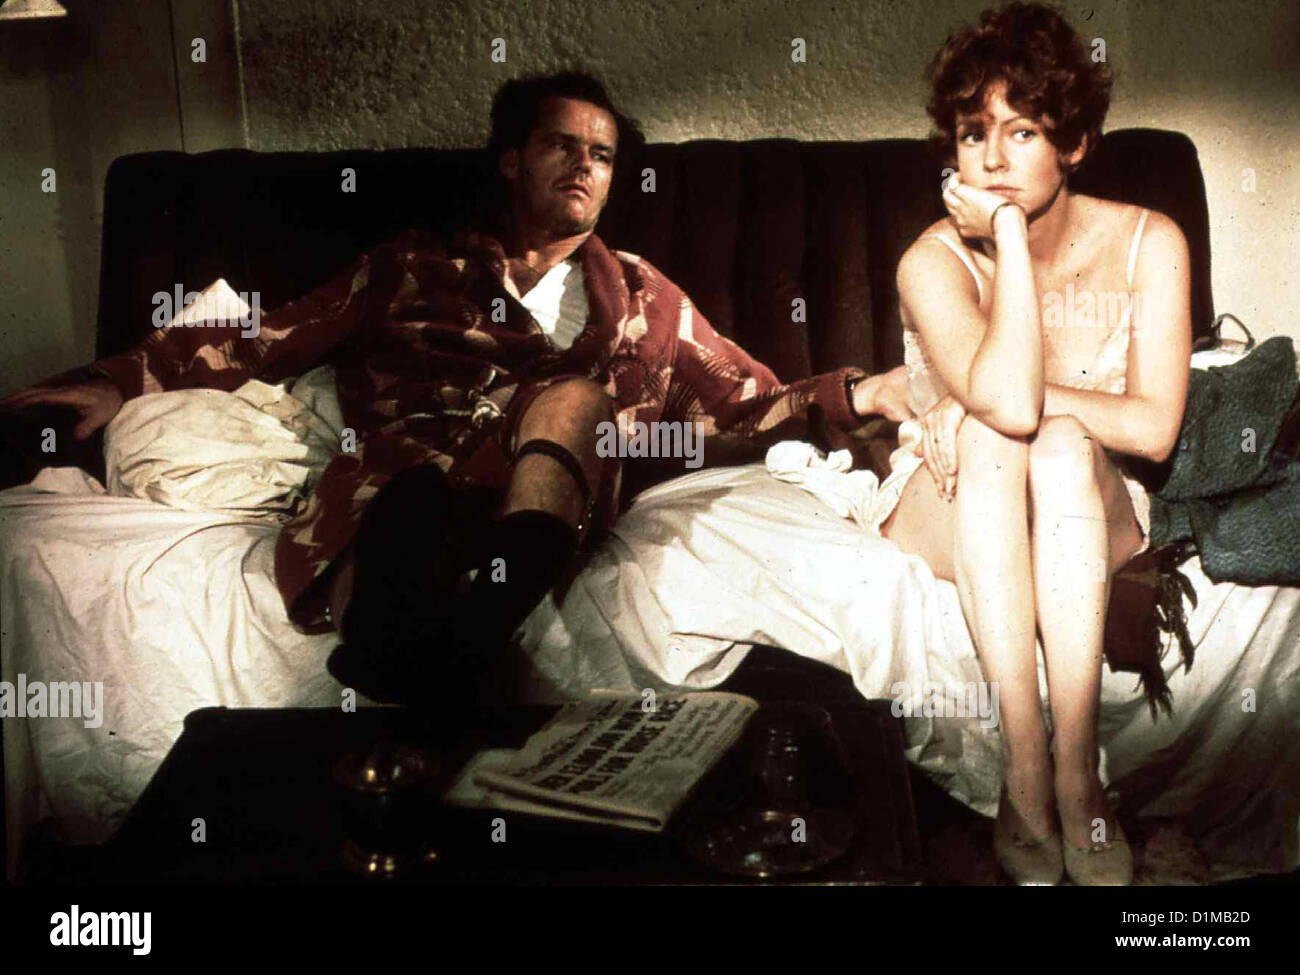 Mitgiftjaeger   Fortune, The   Jack Nicholson, Stockard Channing *** Local Caption *** 1975  -- - Stock Image